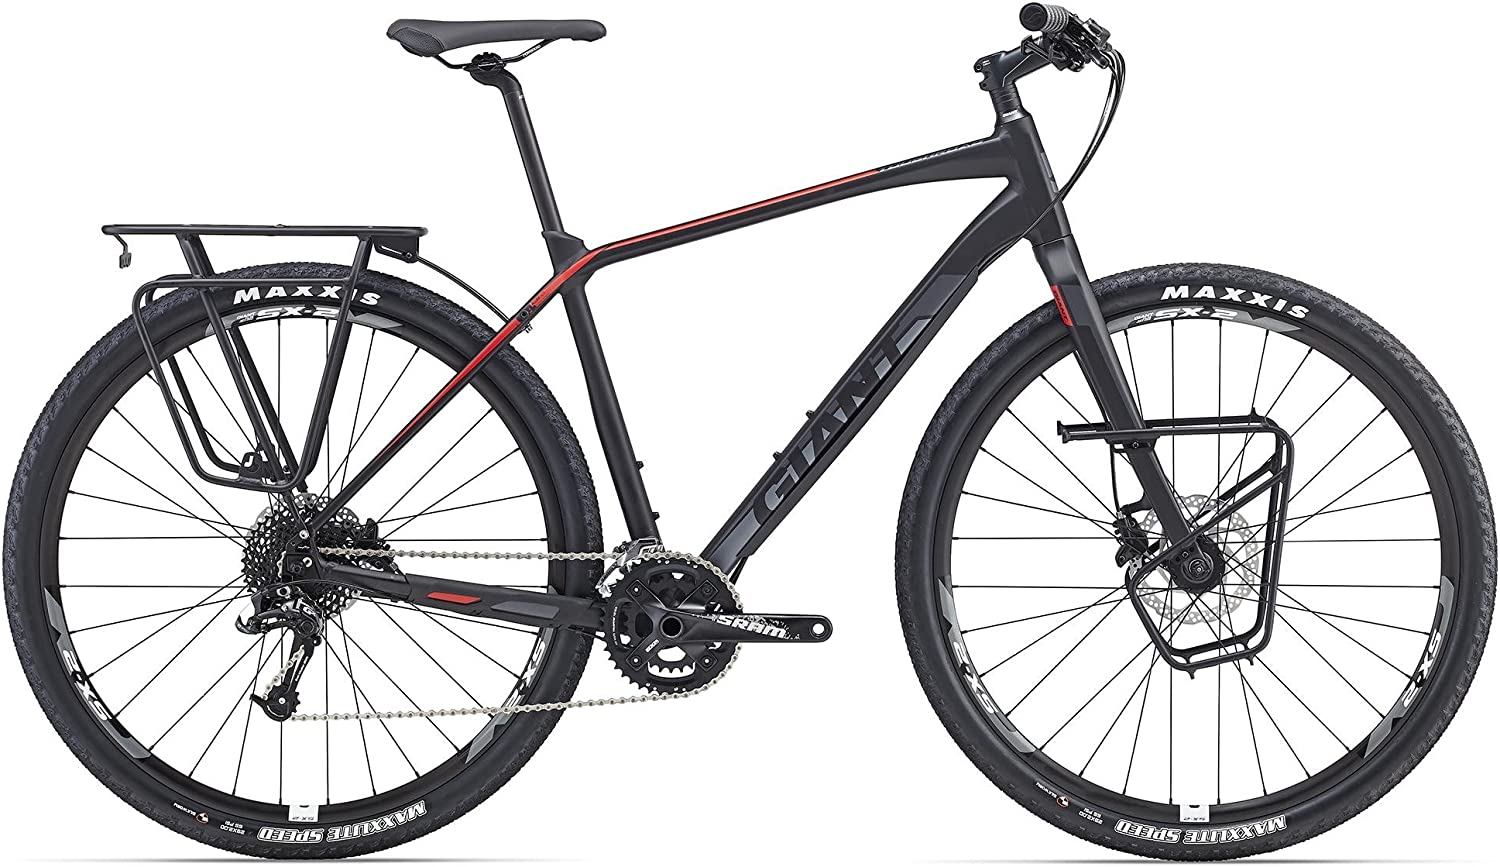 GIANT Tough Road SLR 1 71.12 cm Bicicleta de Colour Negro/Rojo ...